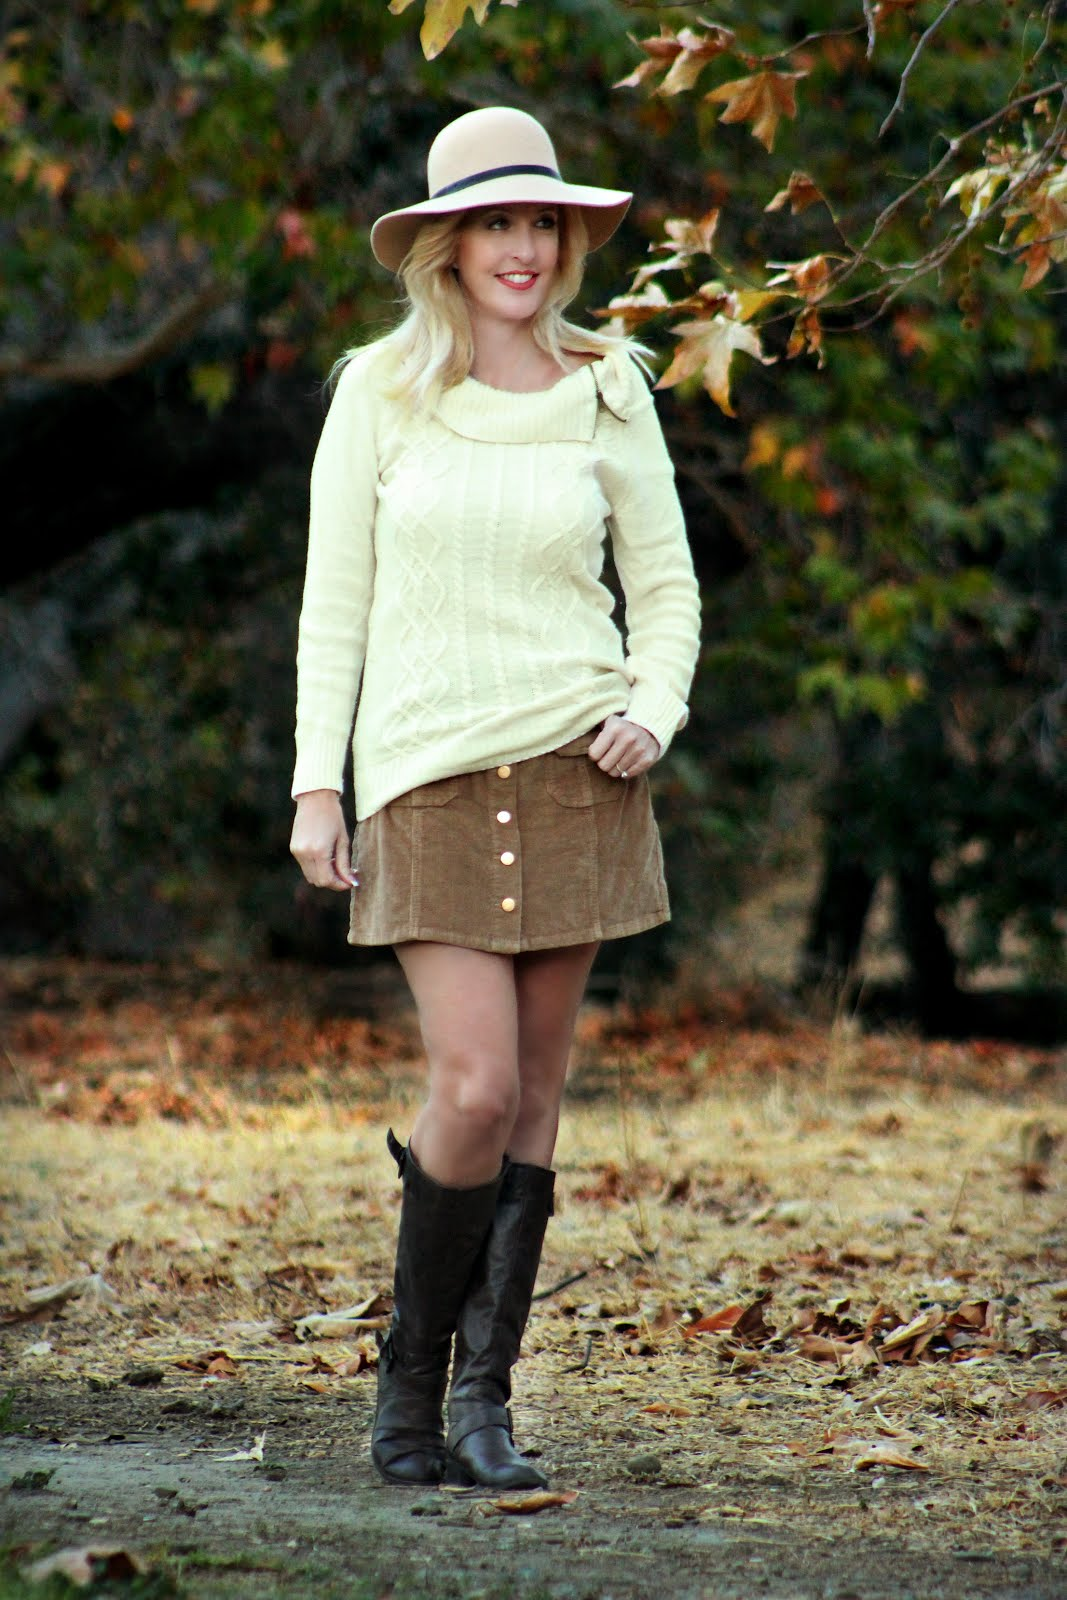 Corduroy Skirt & Cozy Knit Sweater